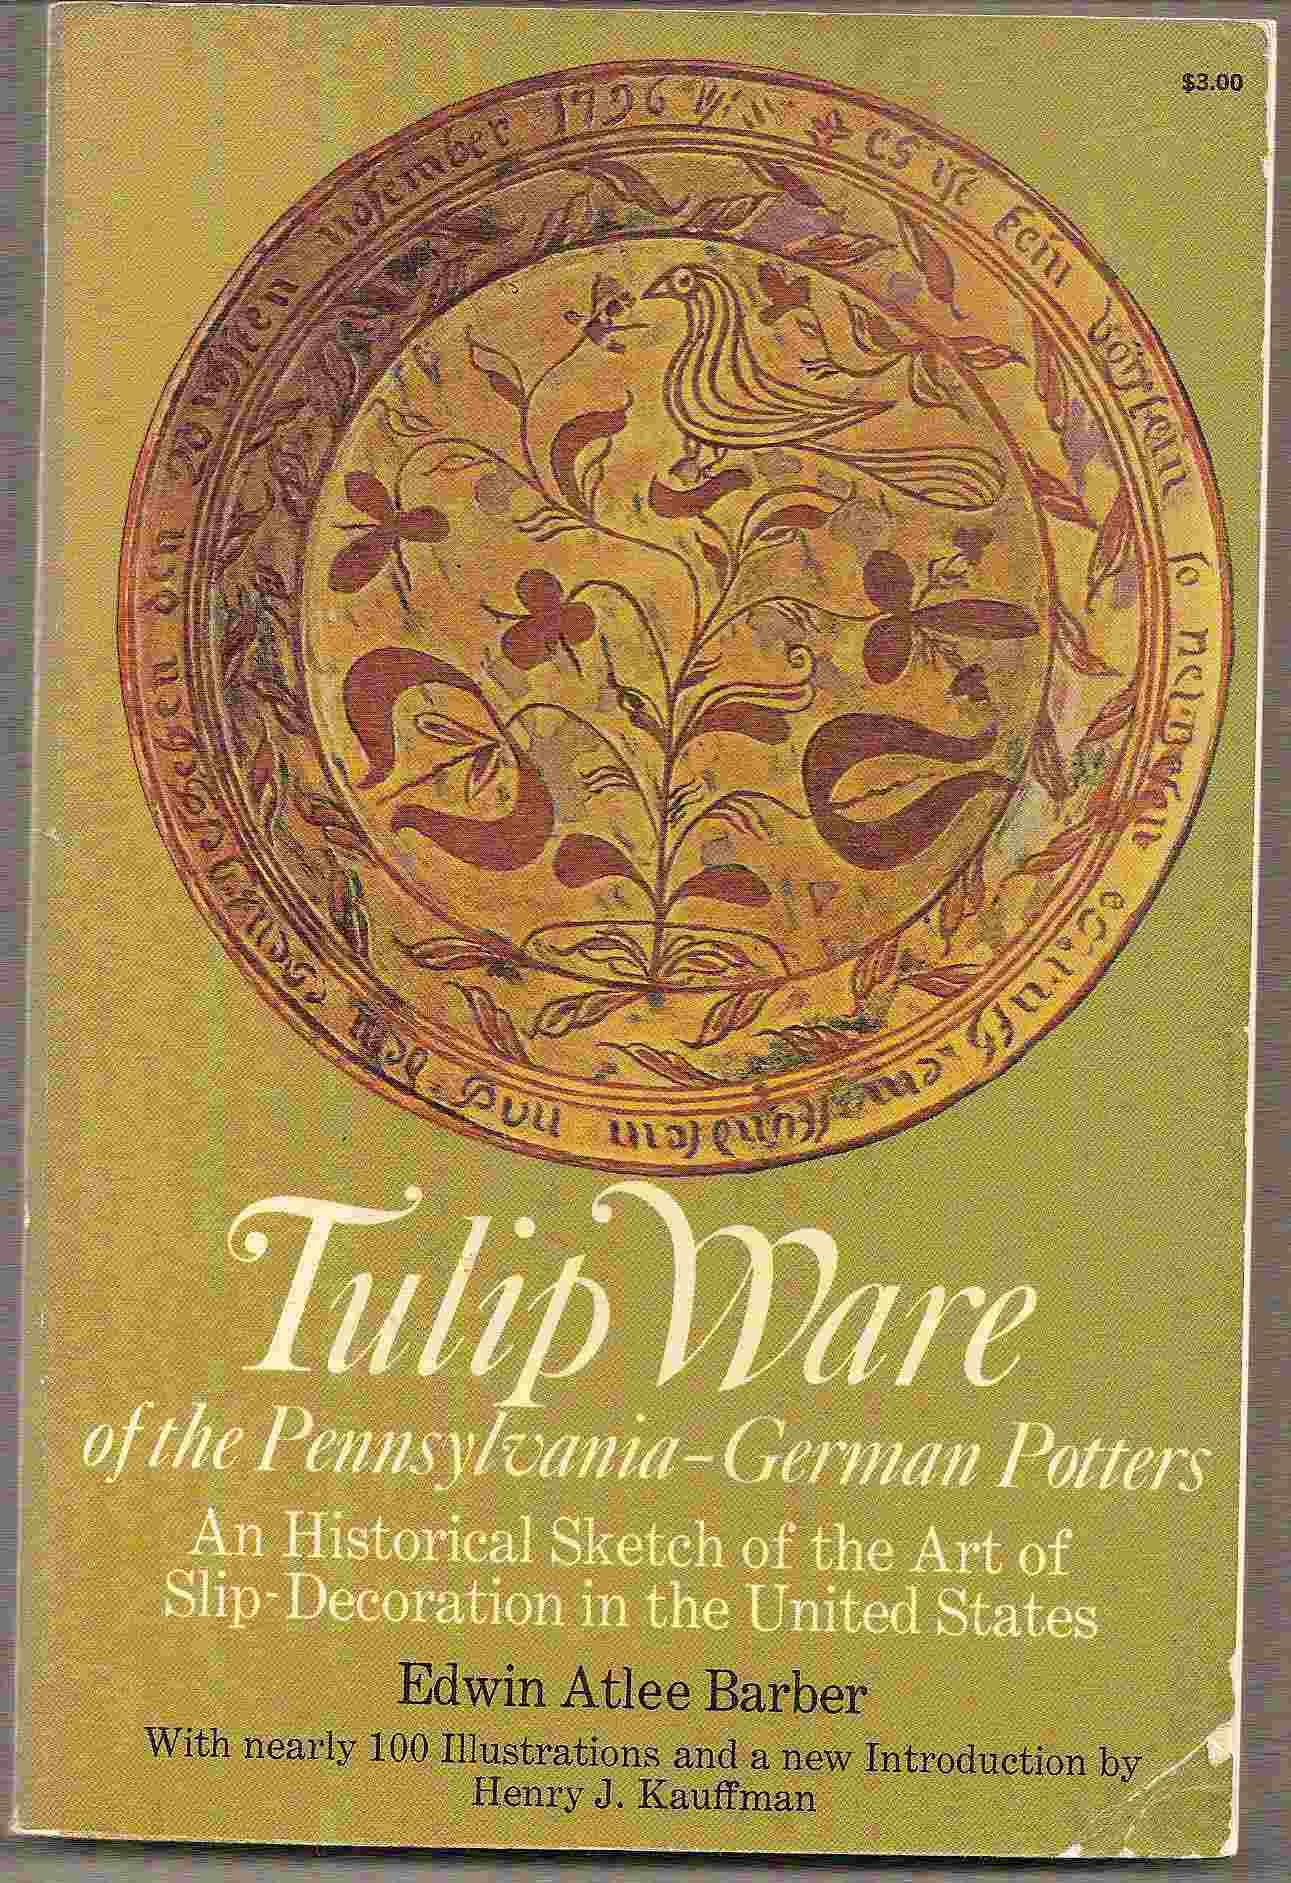 Image for An Historical Sketch of the Art of Slip-Decoration in the United States; TULIP WARE OF THE PENNSYLVANIA-GERMAN POTTERS: